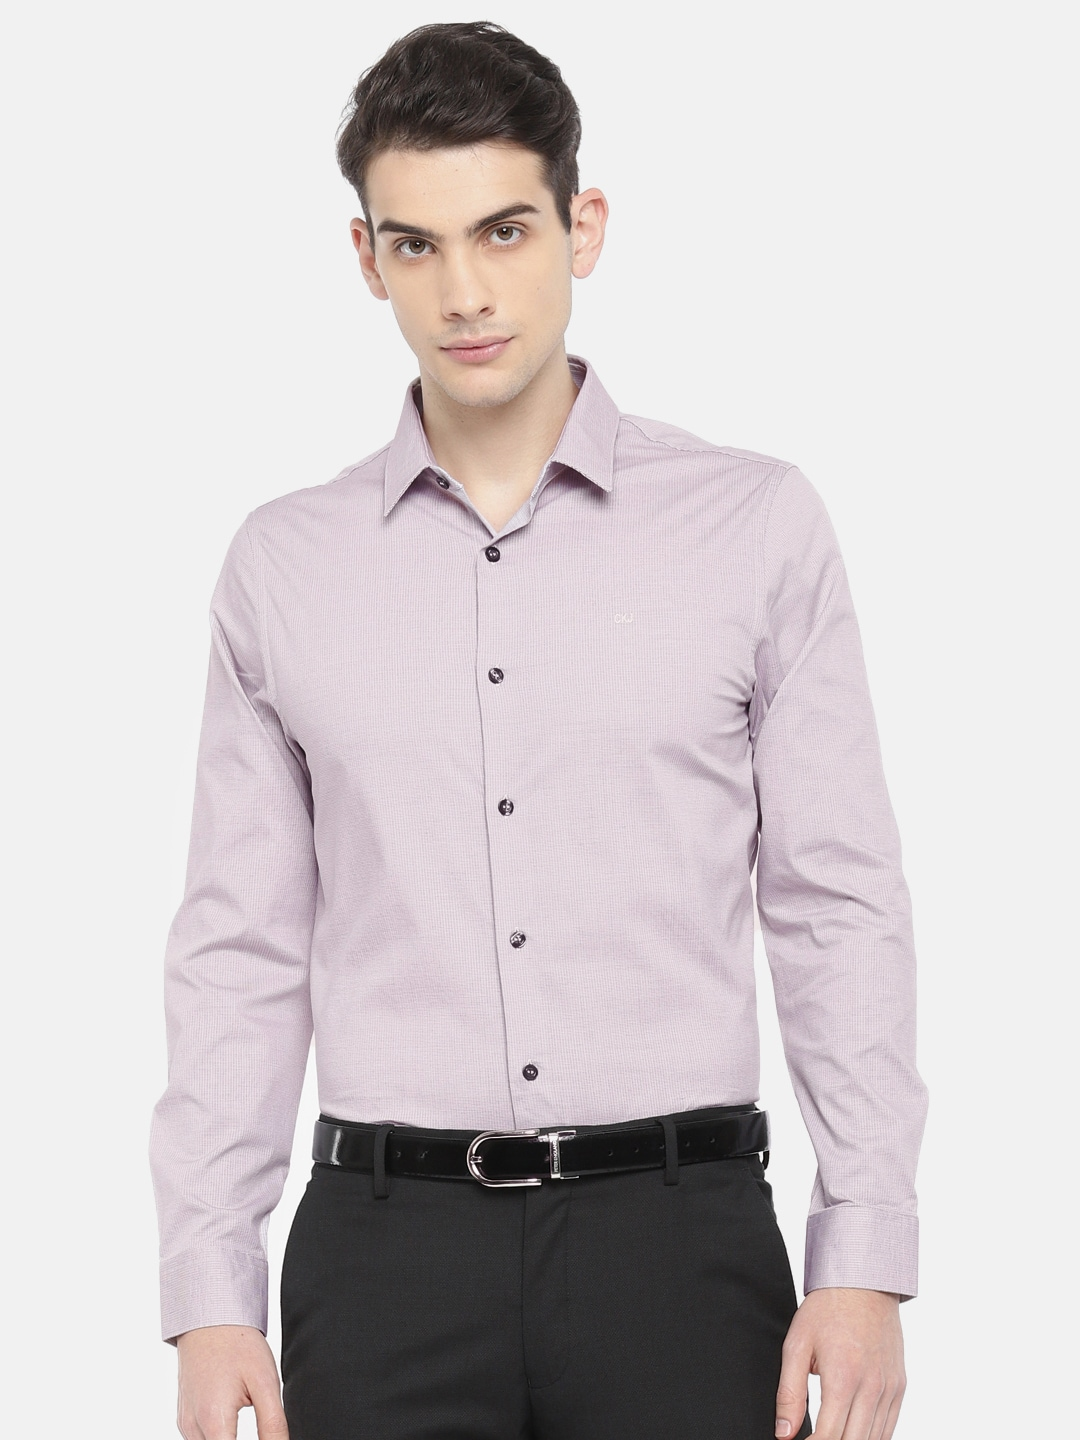 Menamp; At ShirtsBuy Online Check Women India For In l1FJKc